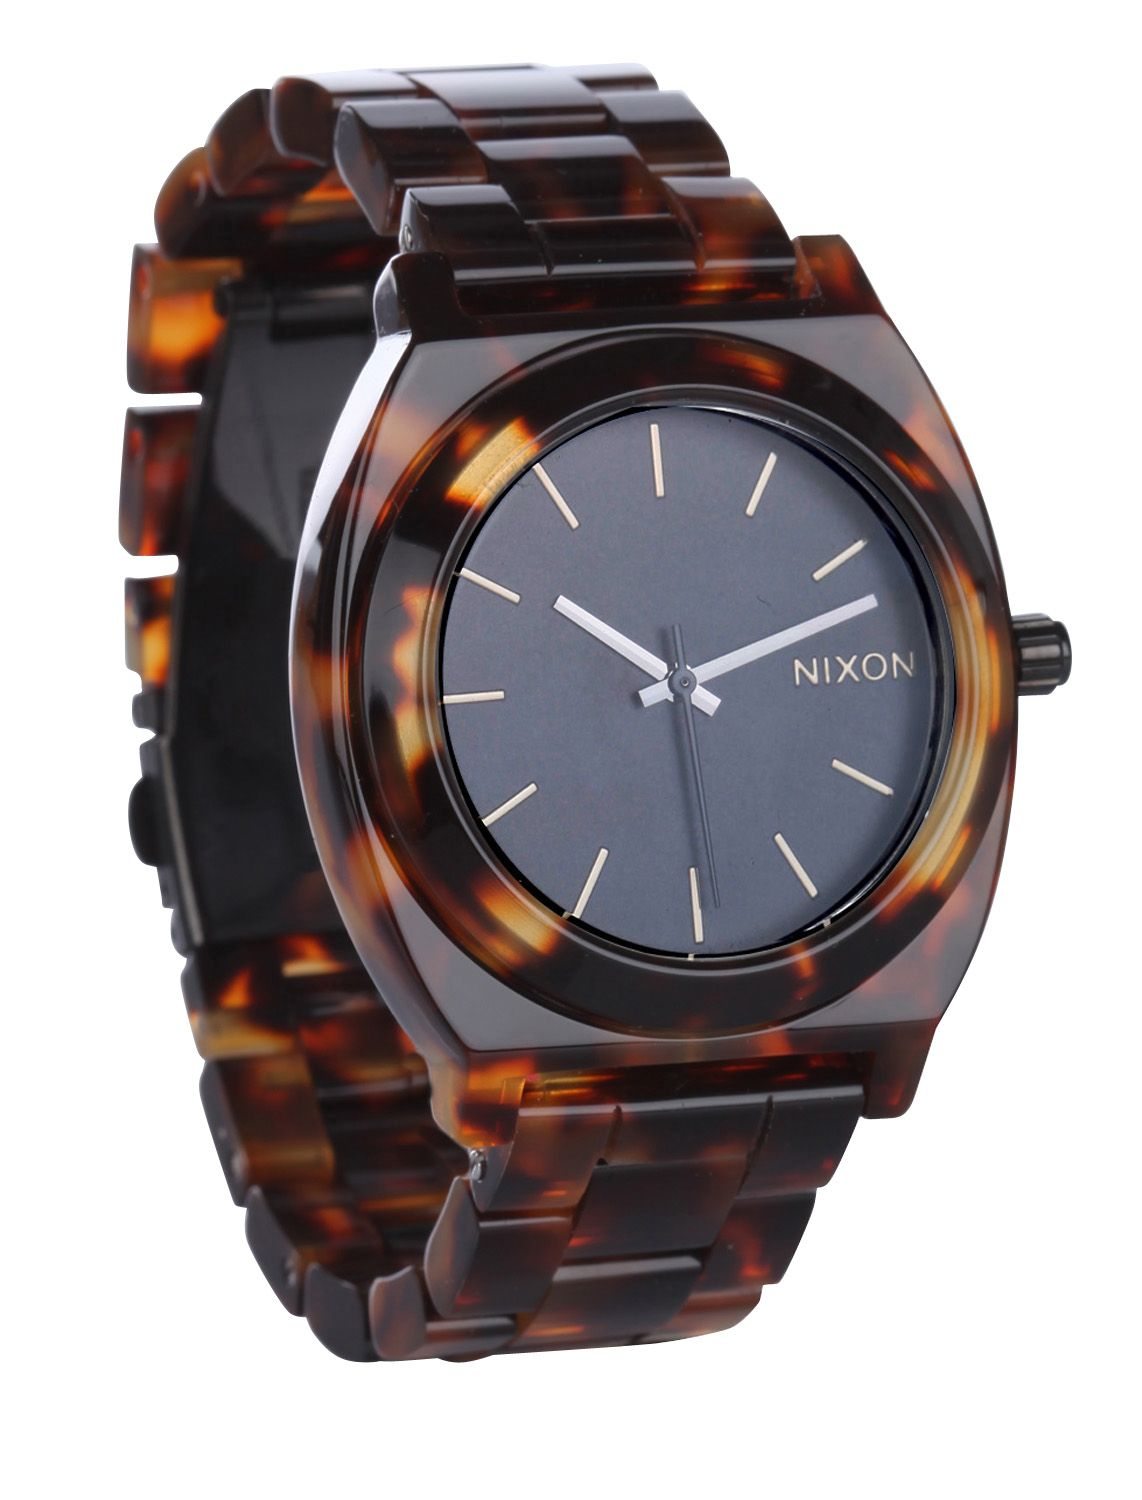 Nixon Watches And Premium Accessories Nixon Com Tortoise Watch Nixon Watch Watches For Men